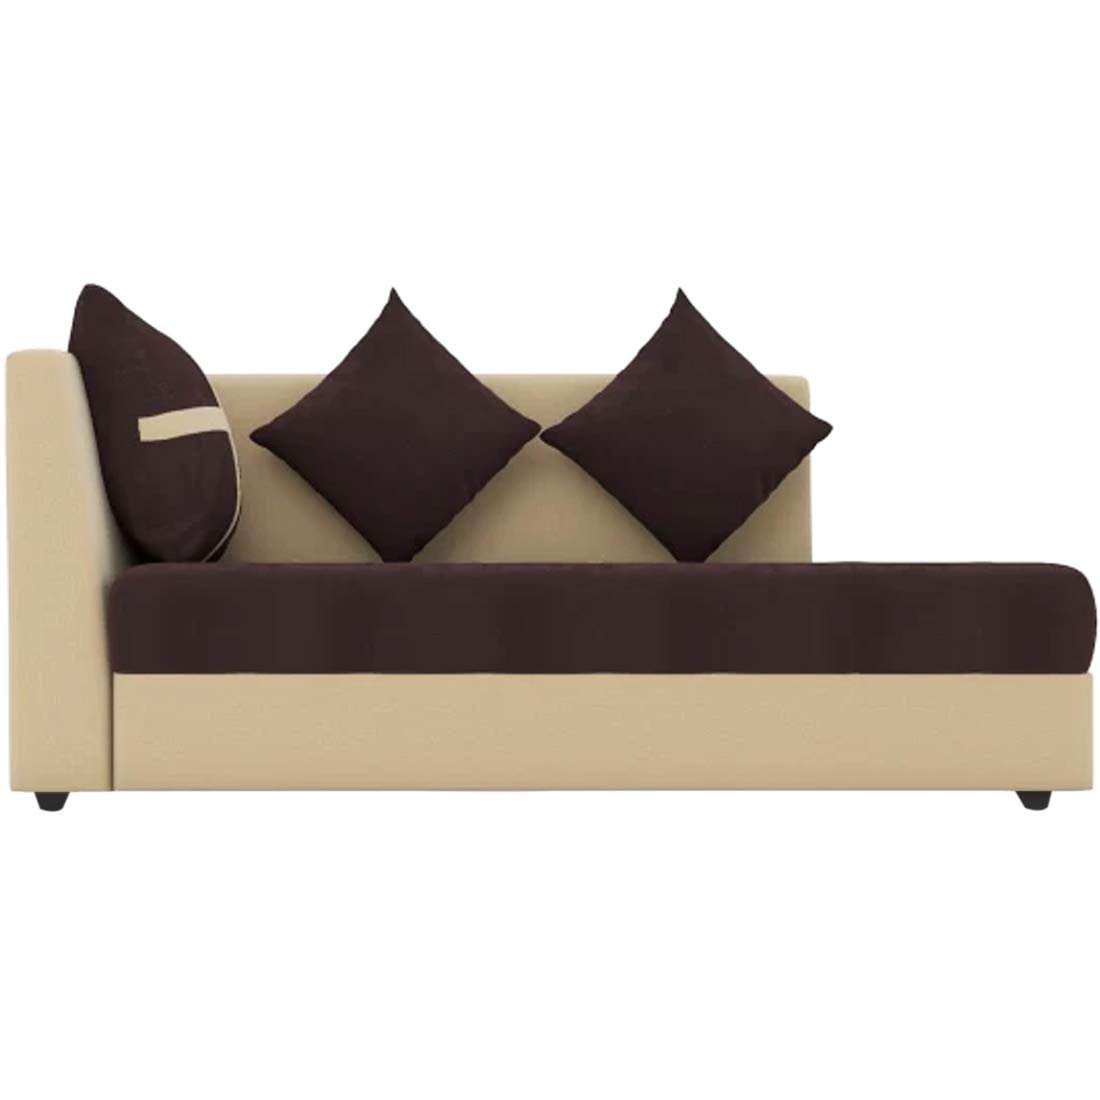 CasaStyle - Arnel 6 Seater L Shape Sofa Set for Living Room RHS (Brown-Cream) Soft Plush Sofa Seating with Strong Back and Thigh Support of Sofa Set